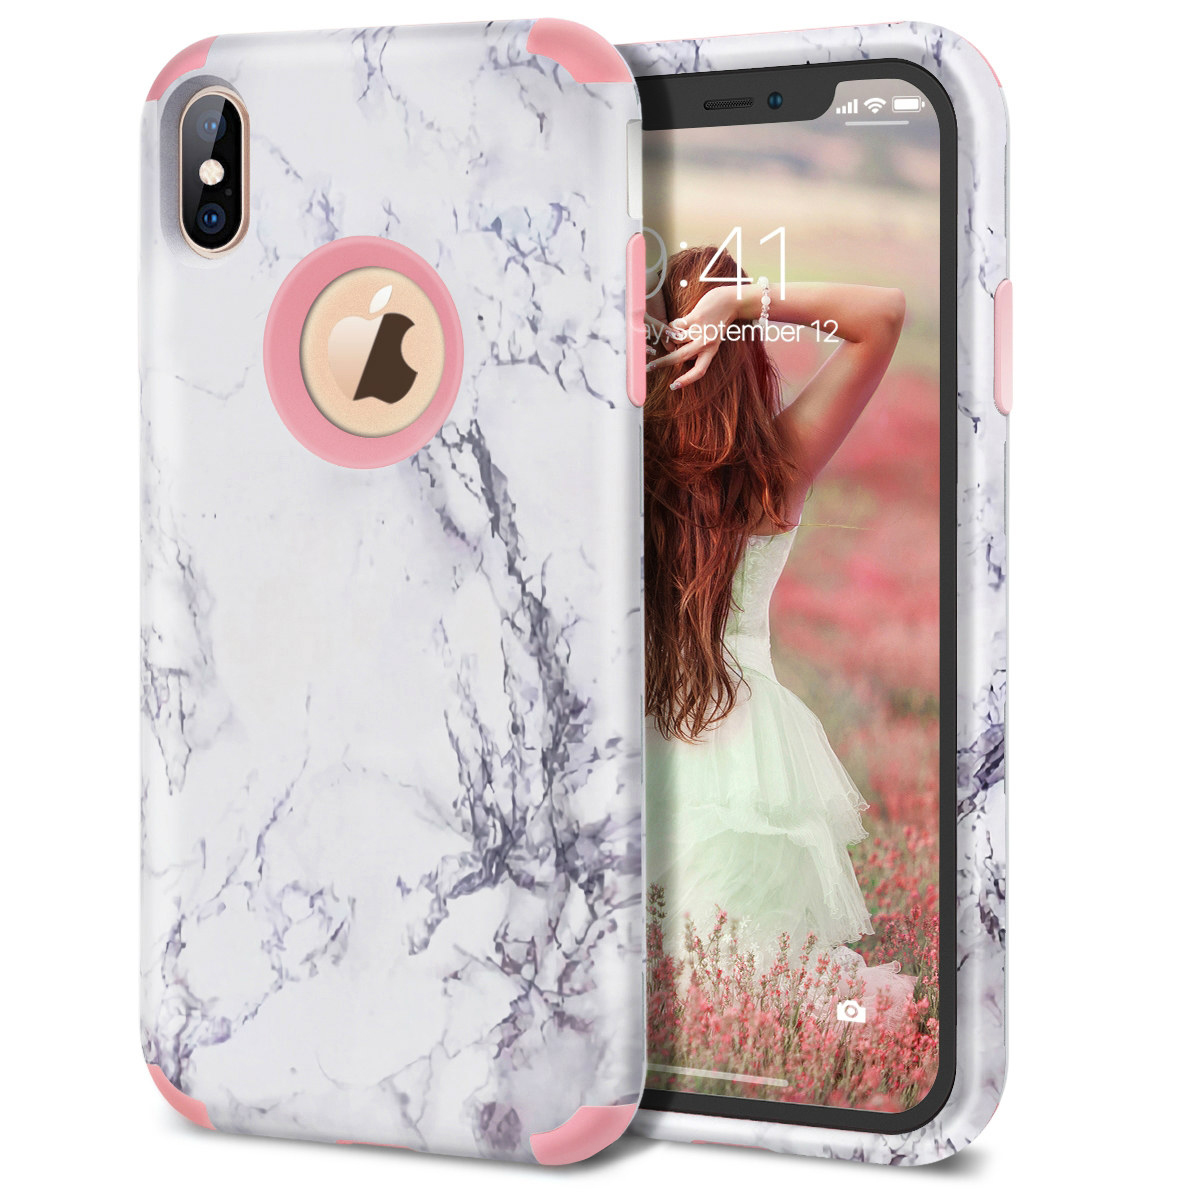 Luxury Marble Hard Case for <font><b>iPhone</b></font> X XR XS Max 7 6 6s 8 Plus Cover Silicone Cute Floral Unicorn 3 In <font><b>1</b></font> Case For <font><b>iPhone</b></font> <font><b>5</b></font> 5S SE image